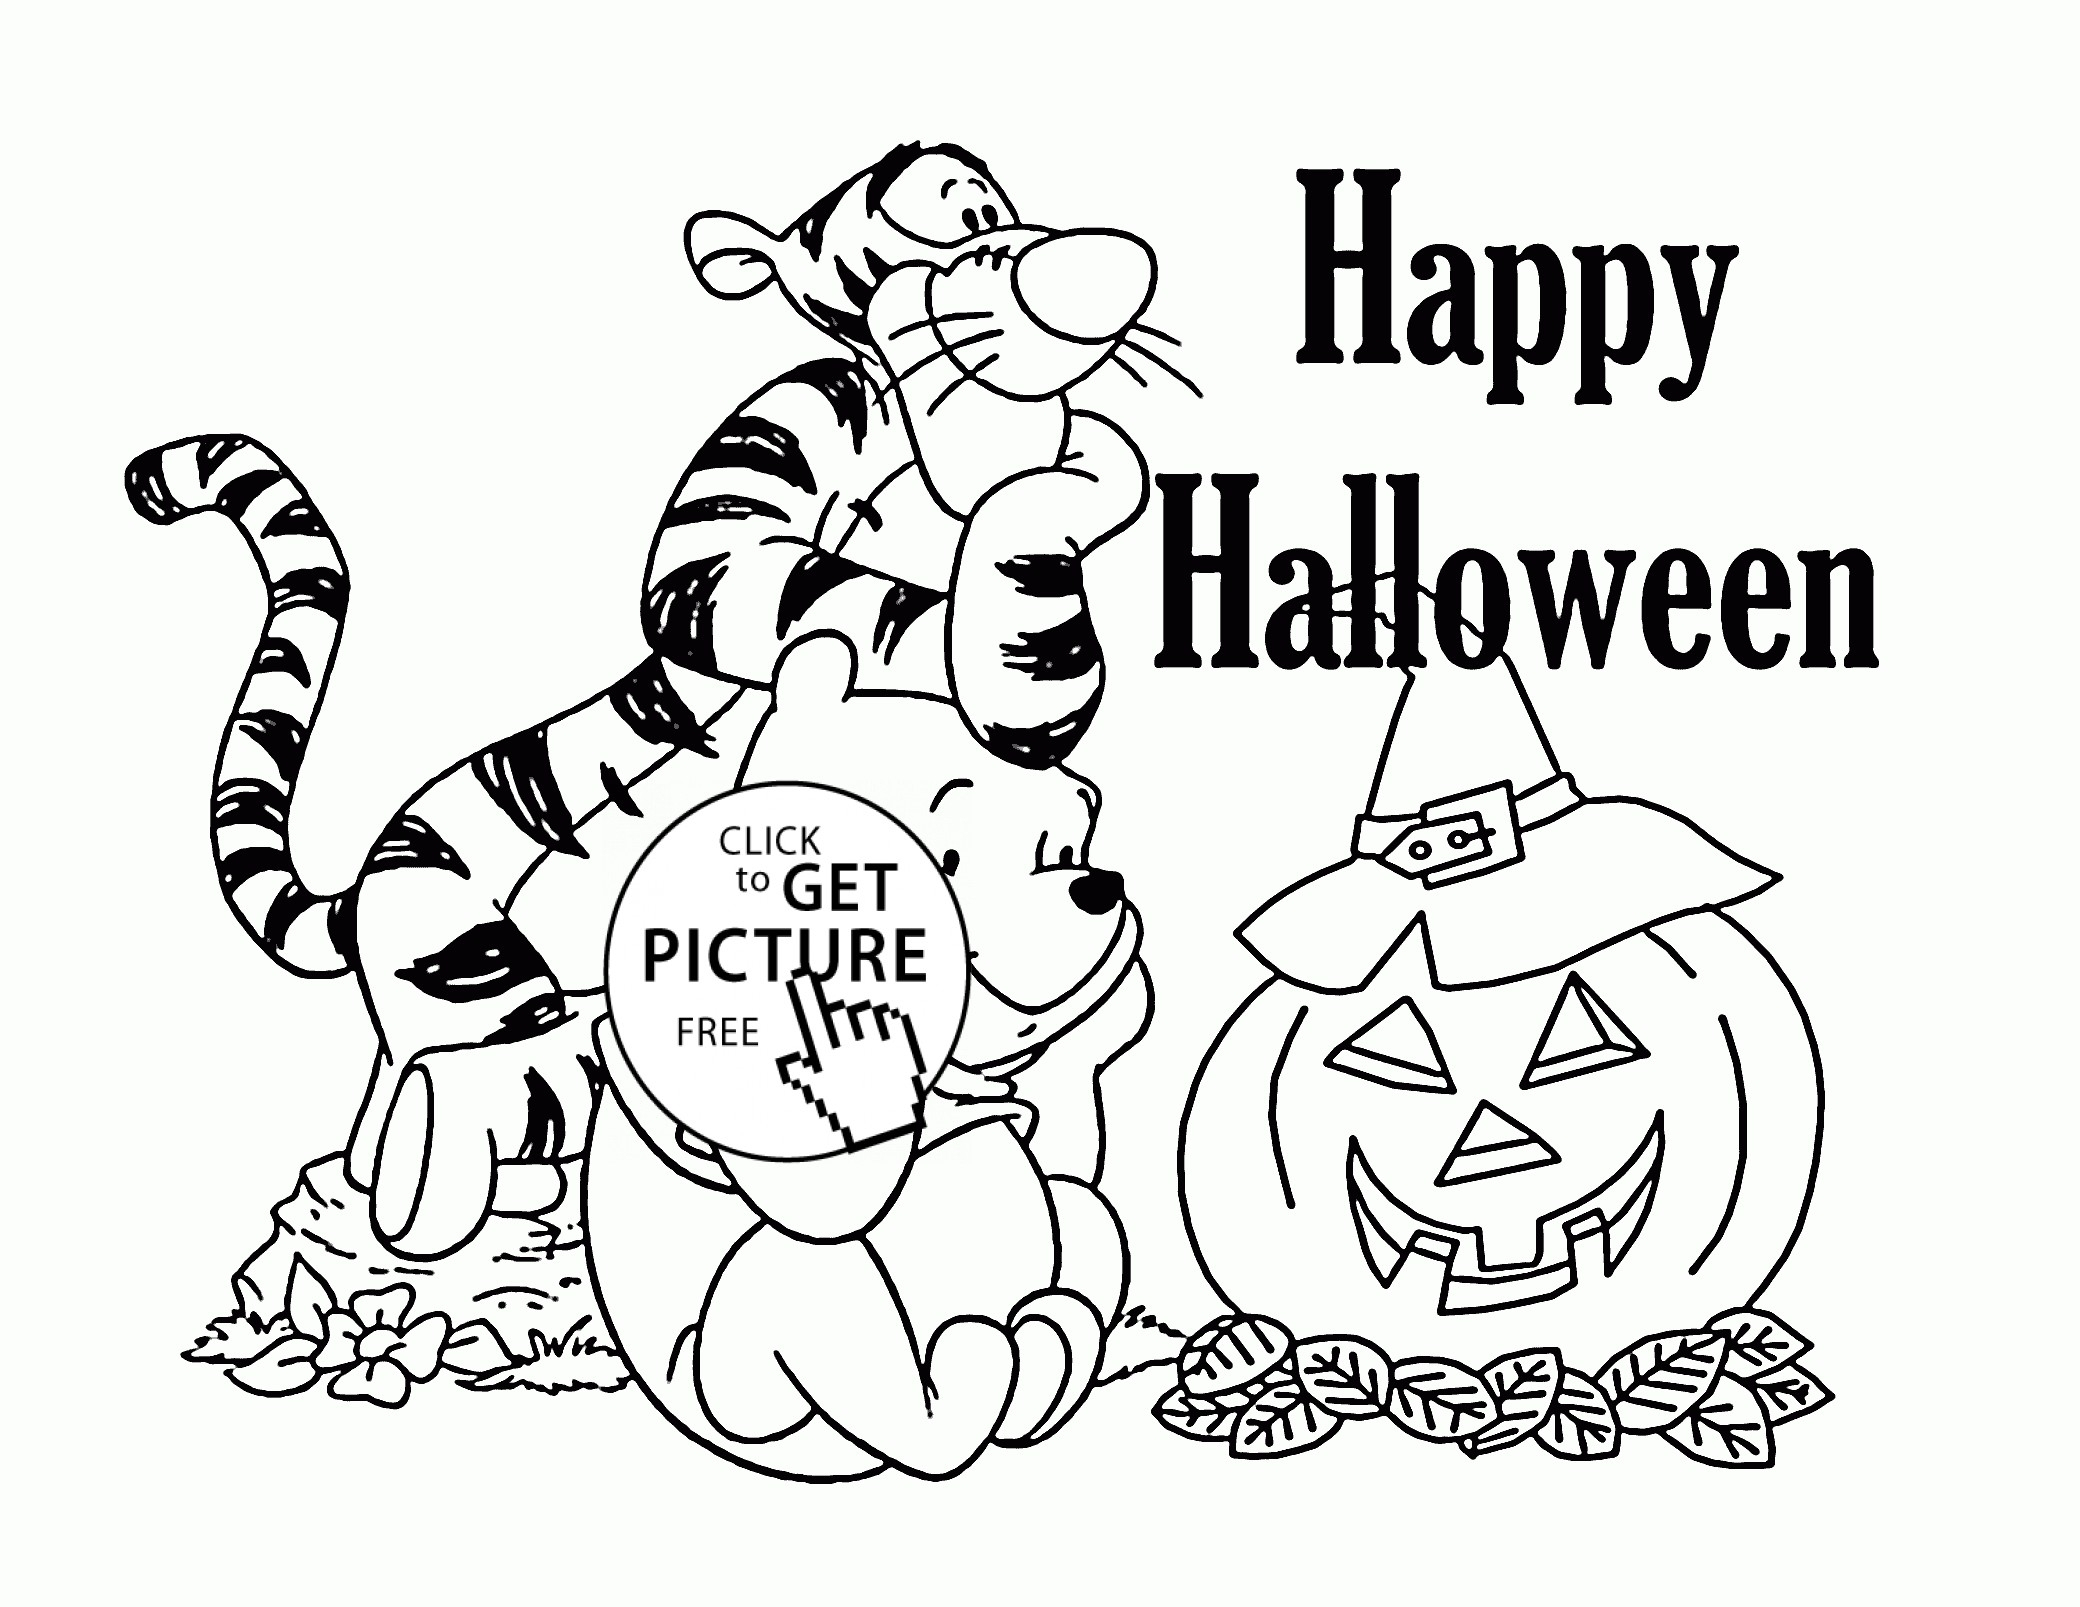 Halloween Coloring Pages For Kids At Getcolorings